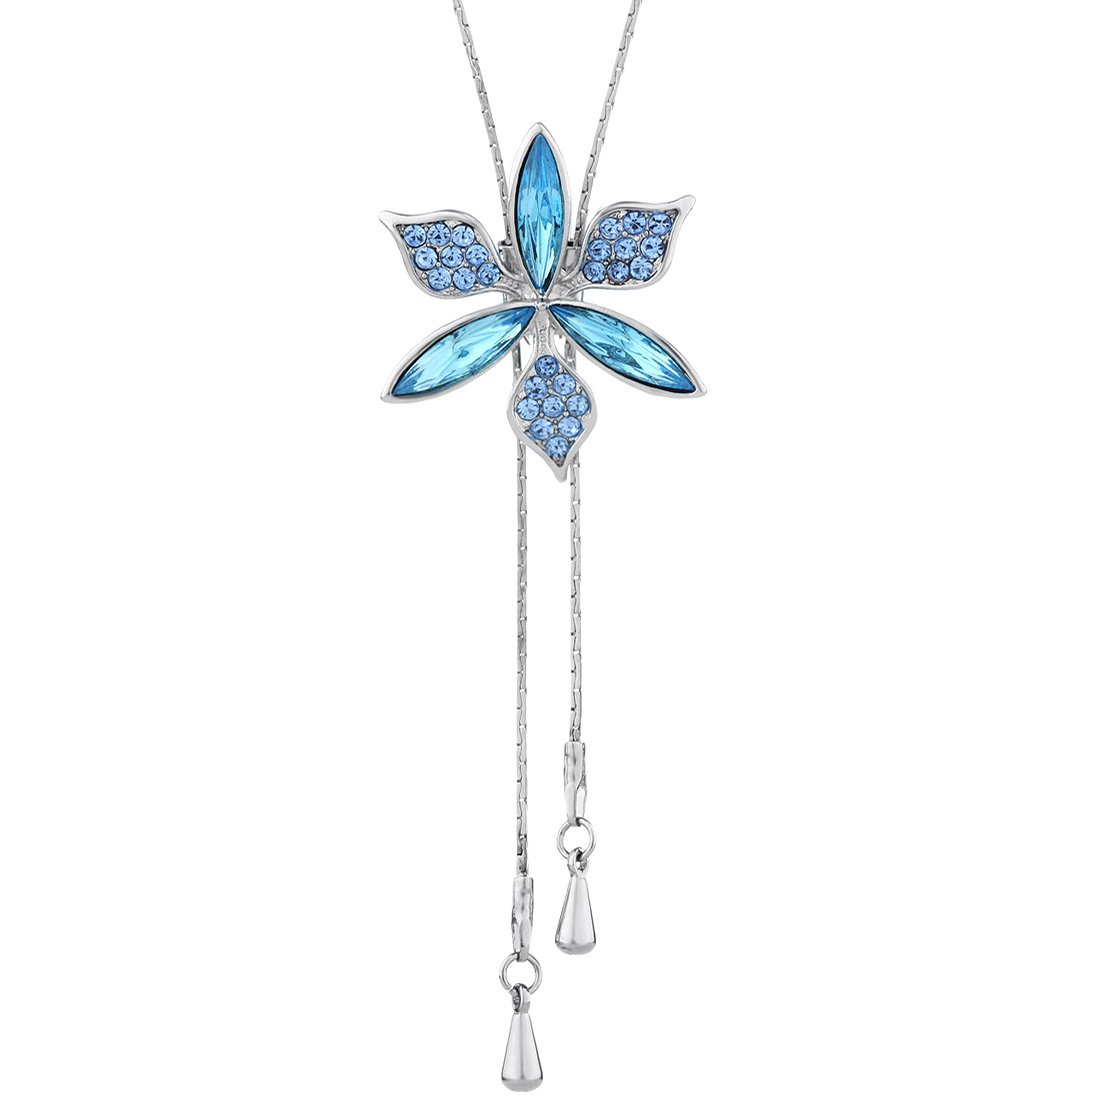 Neoglory Jewelry Fashion Style Flowers Y Long Adjustable Size Popular Rhinestone Necklace Pendant Womens 42.5inches 211167010702